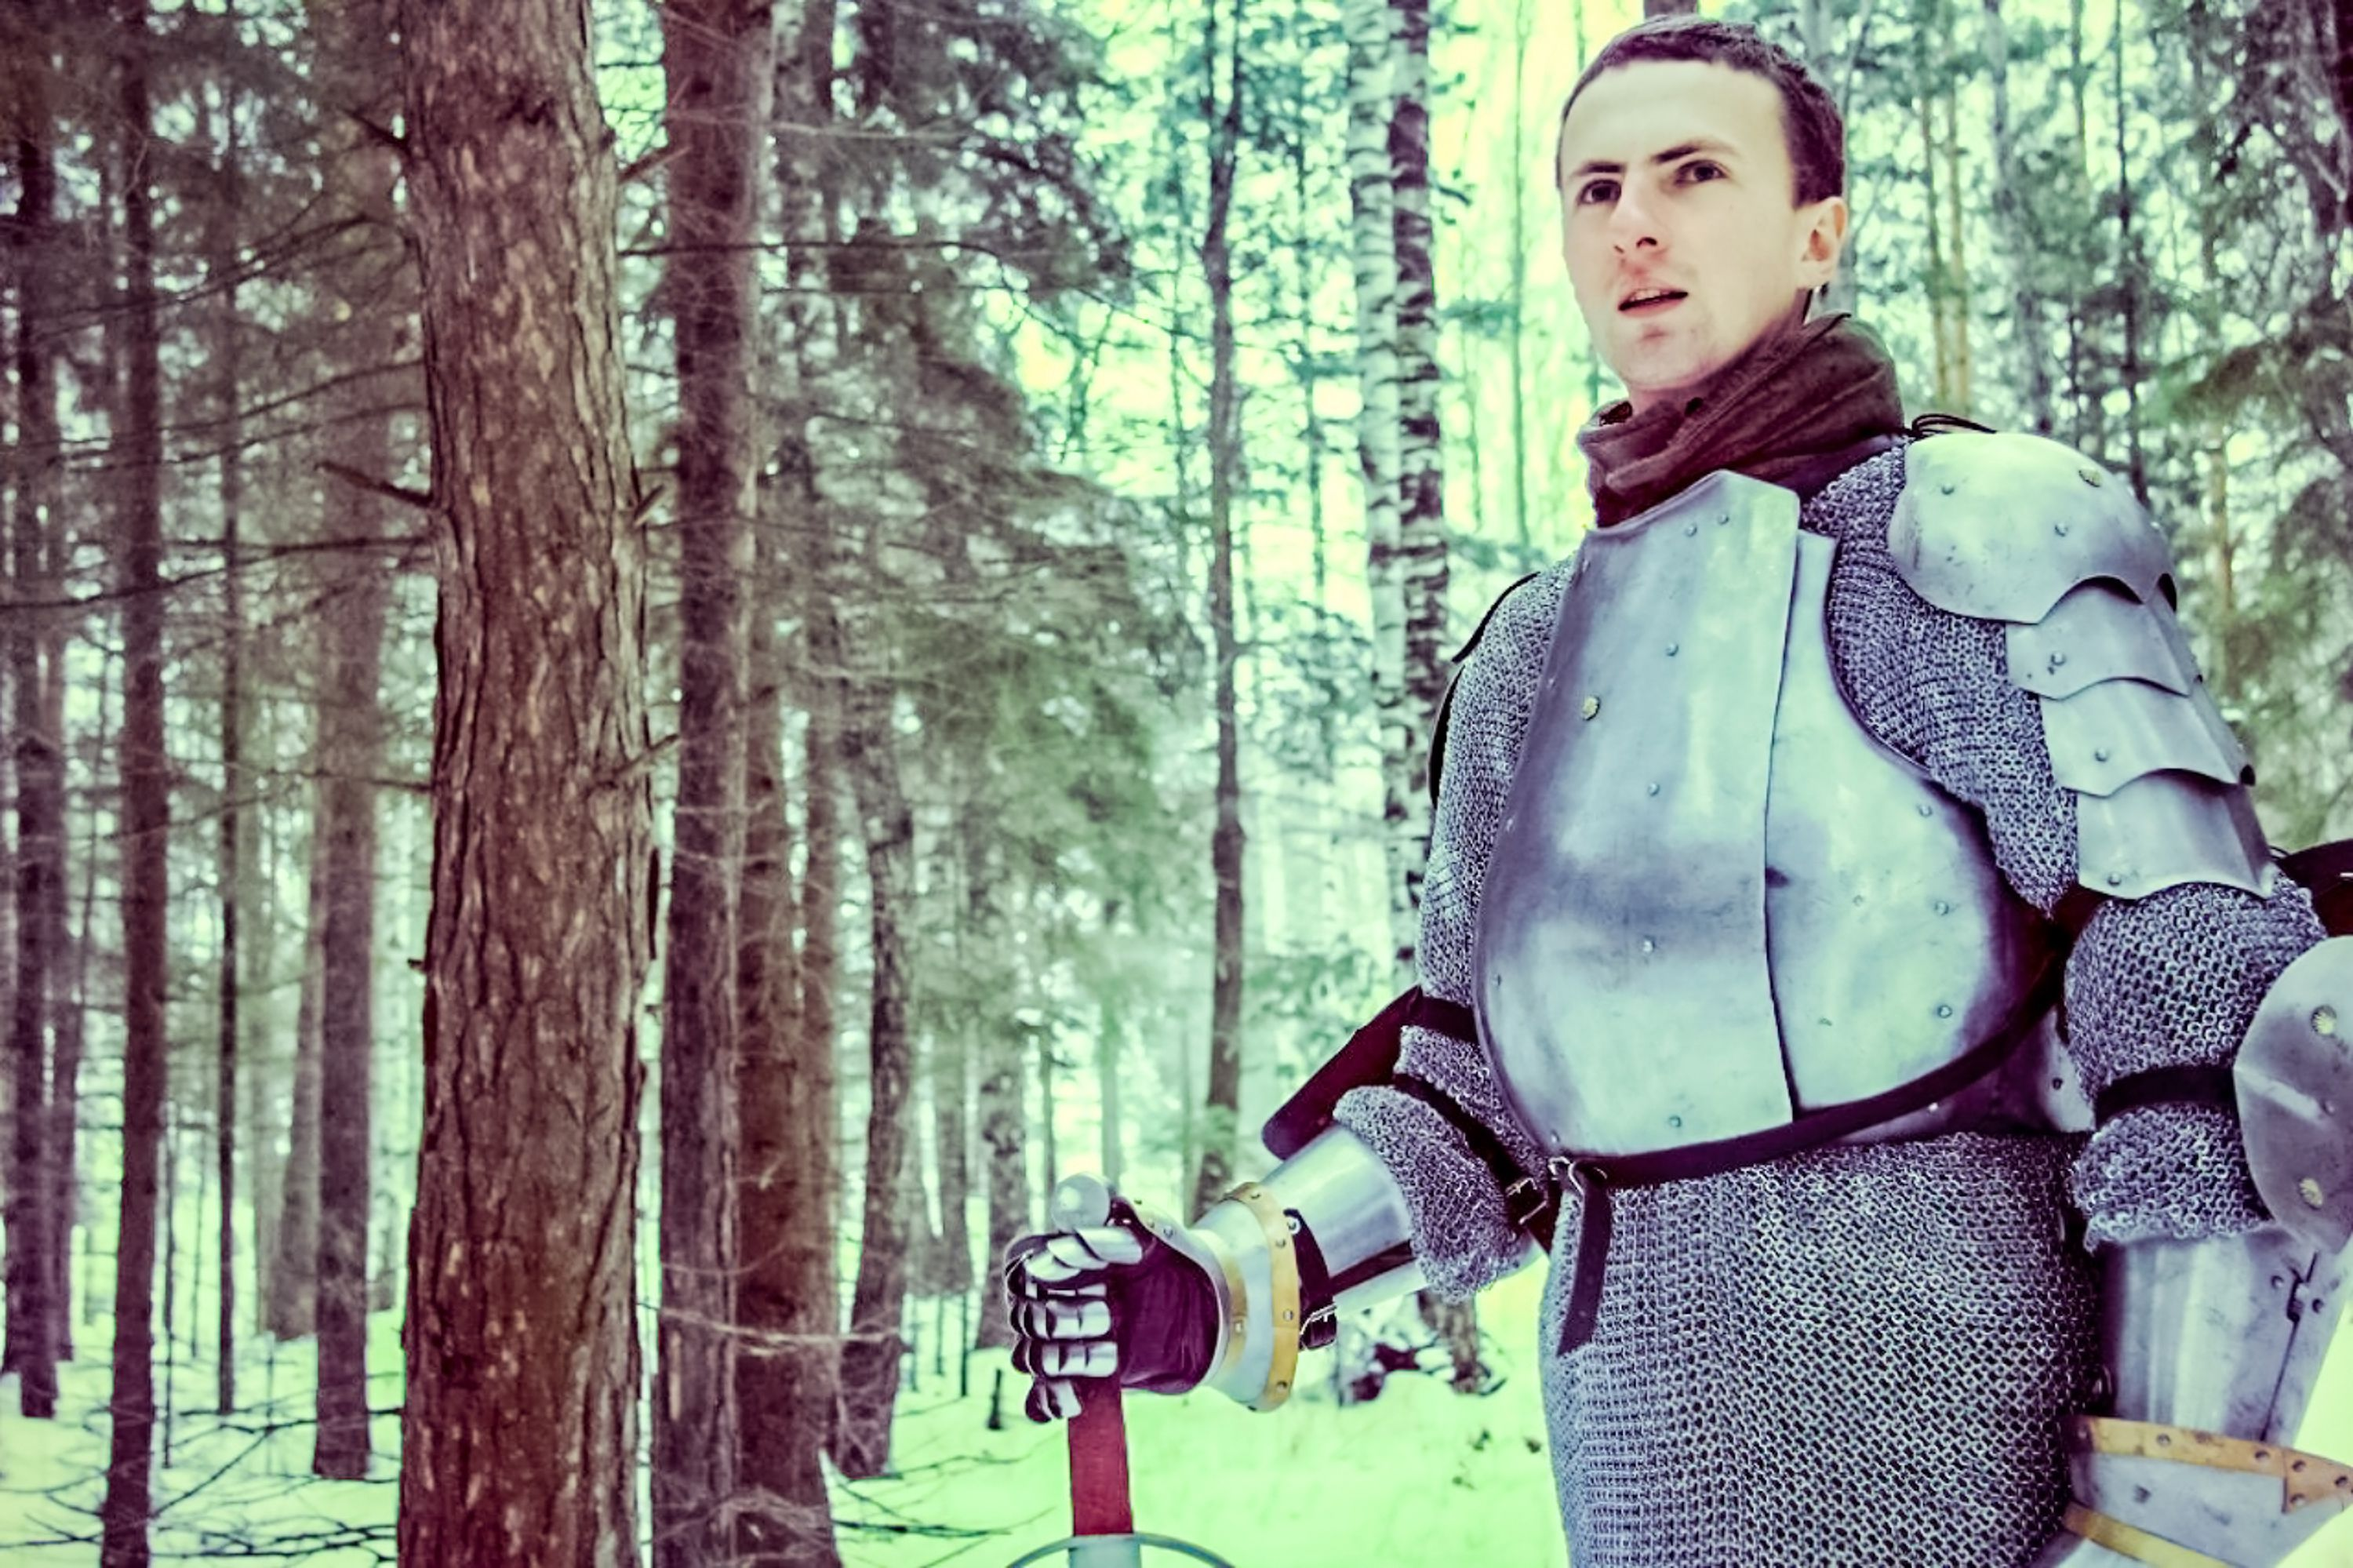 Knight in armor and with a sword in the middle of a winter forest. Vintage military uniform